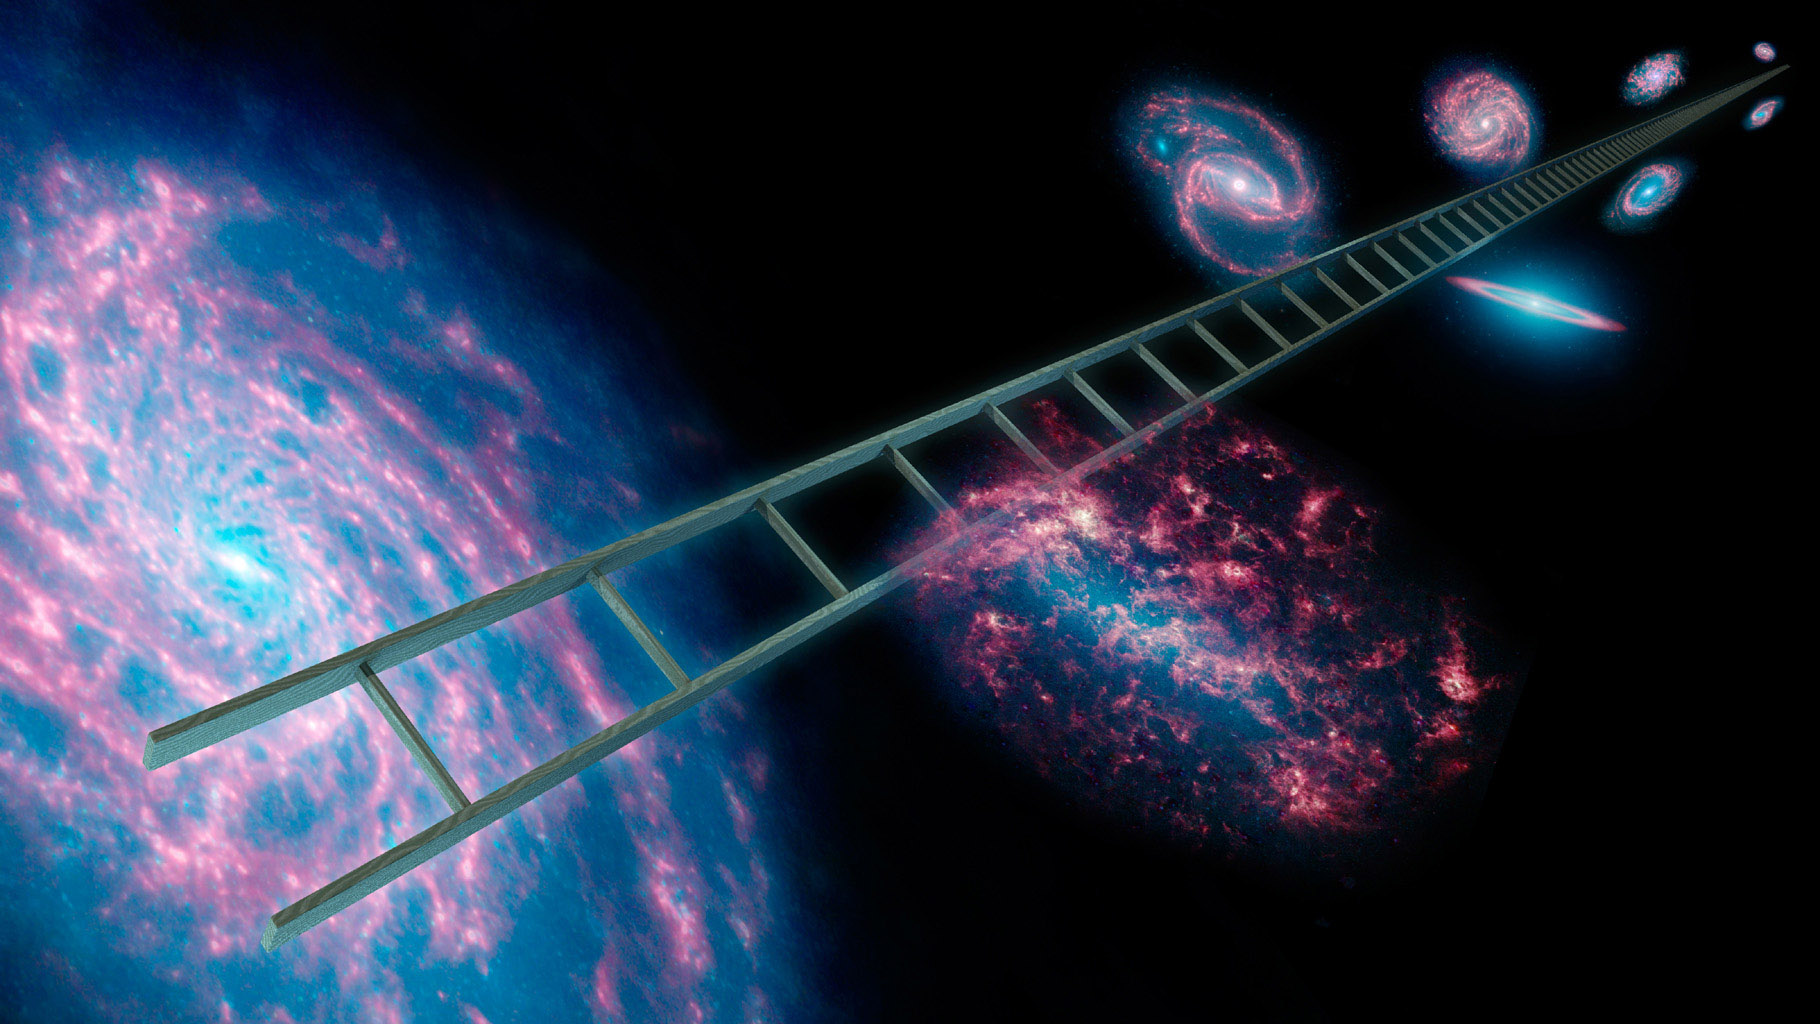 Astronomers using NASA's Spitzer Space Telescope have greatly improved the cosmic distance ladder used to measure the expansion rate of the universe, its size and age. This artist's concept symbolically shows a series of stars that have known distances.